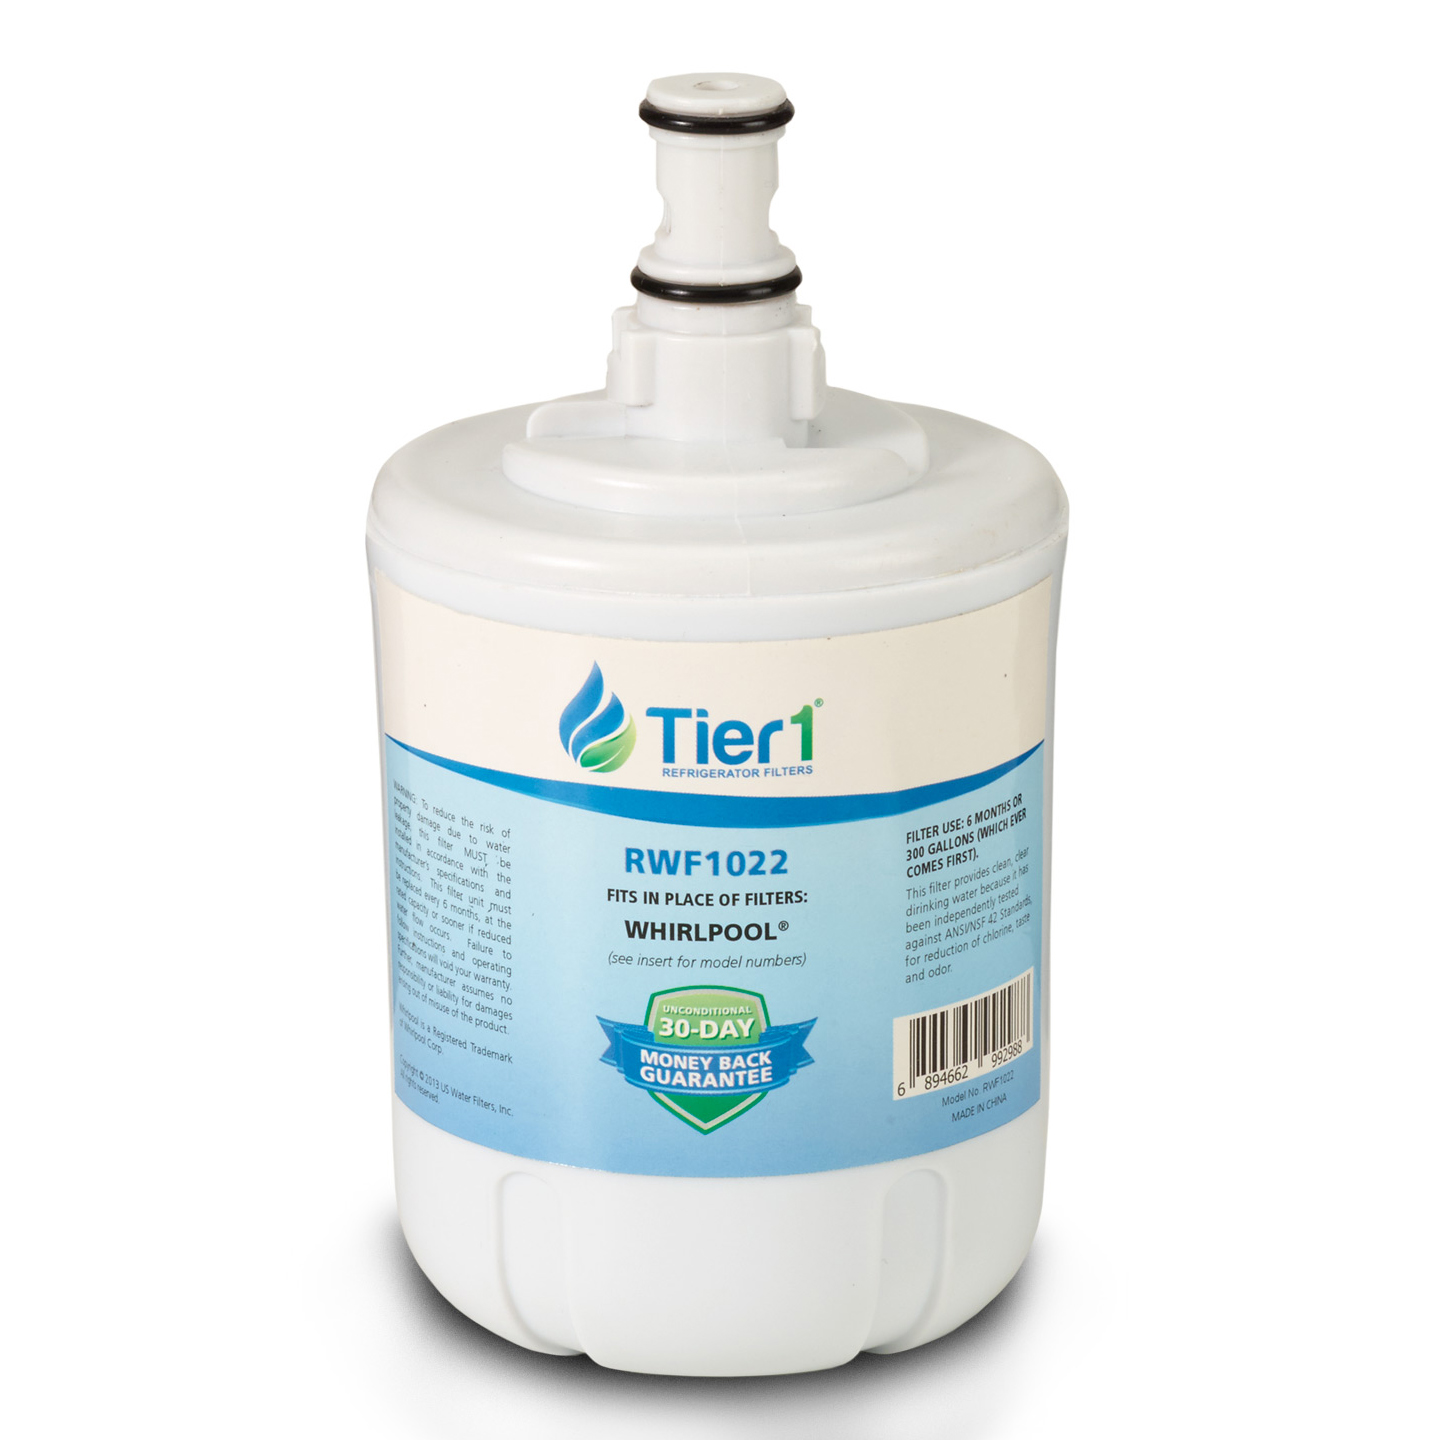 Whirlpool 8171413/8171414 Comparable Refrigerator Water Filter Replacement By Tier1 TIER1-RWF1022